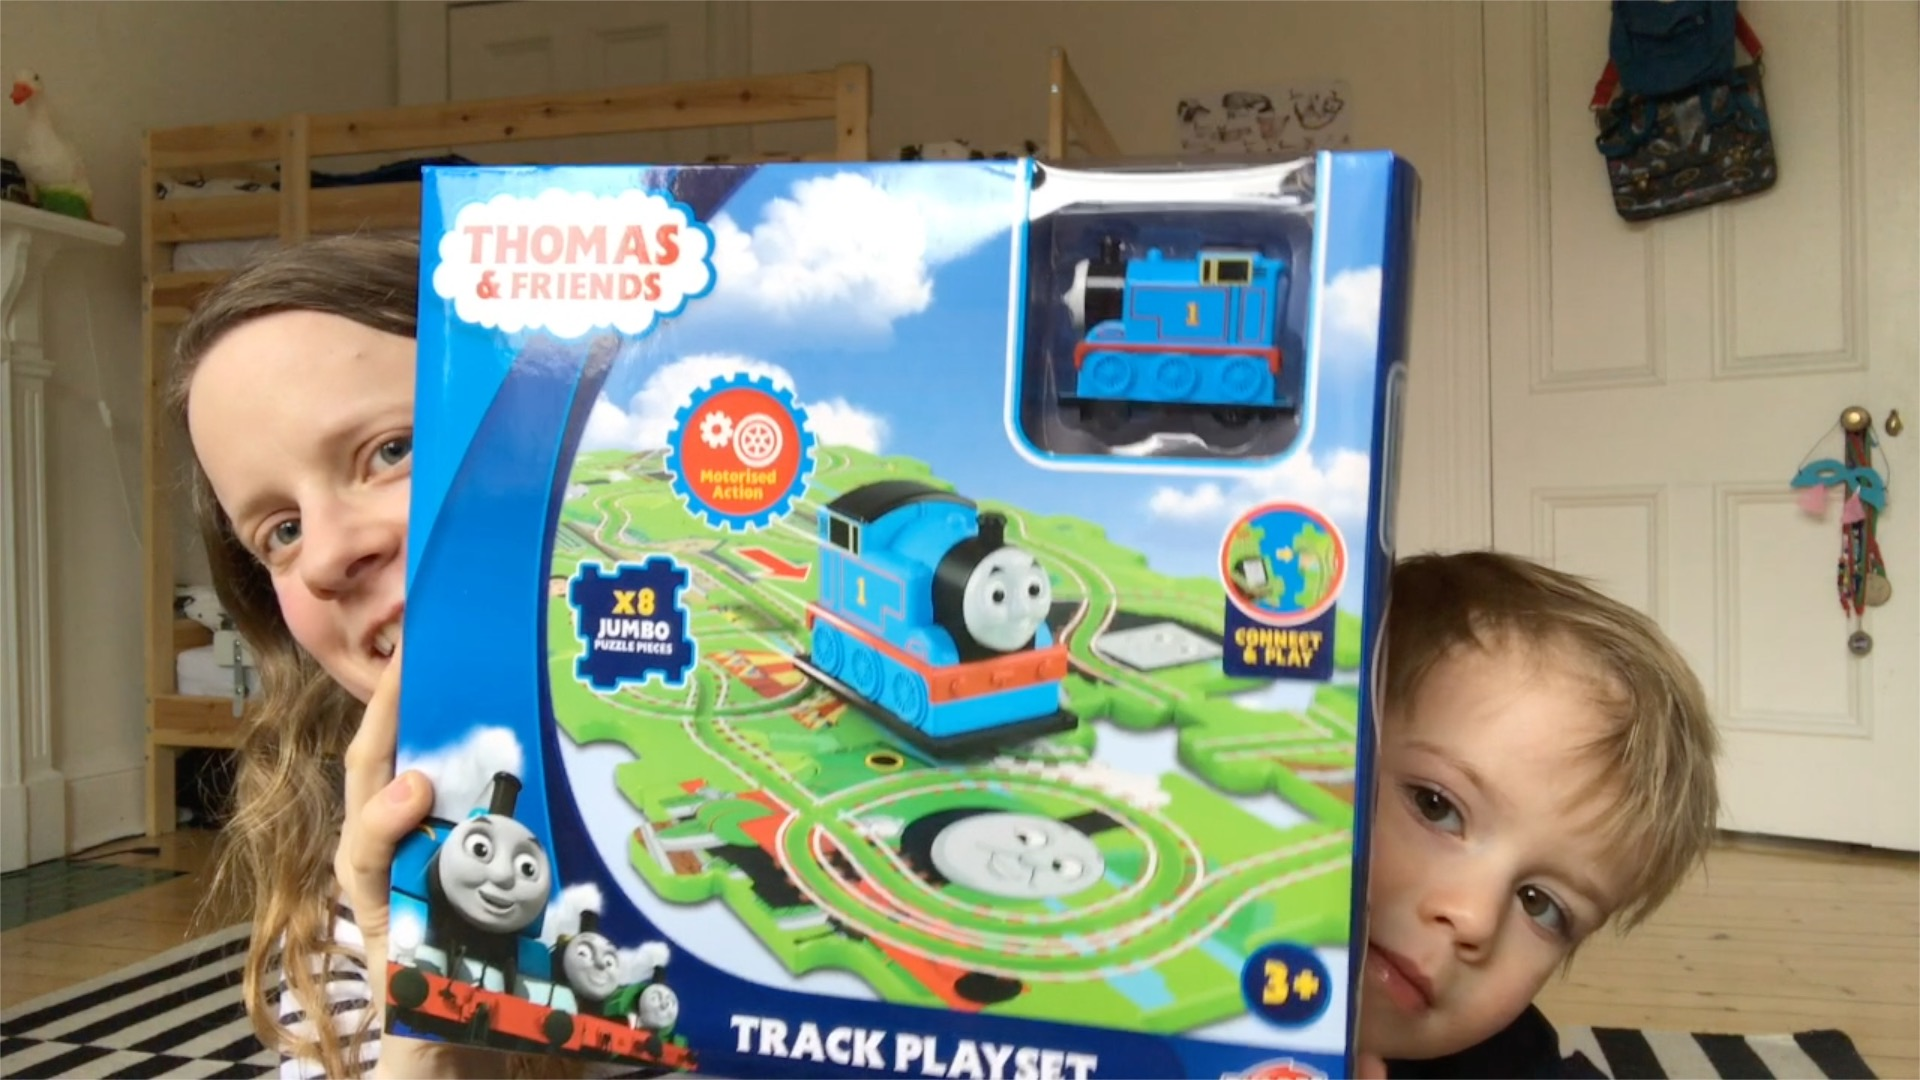 Thomas & Friends Review (final) 02